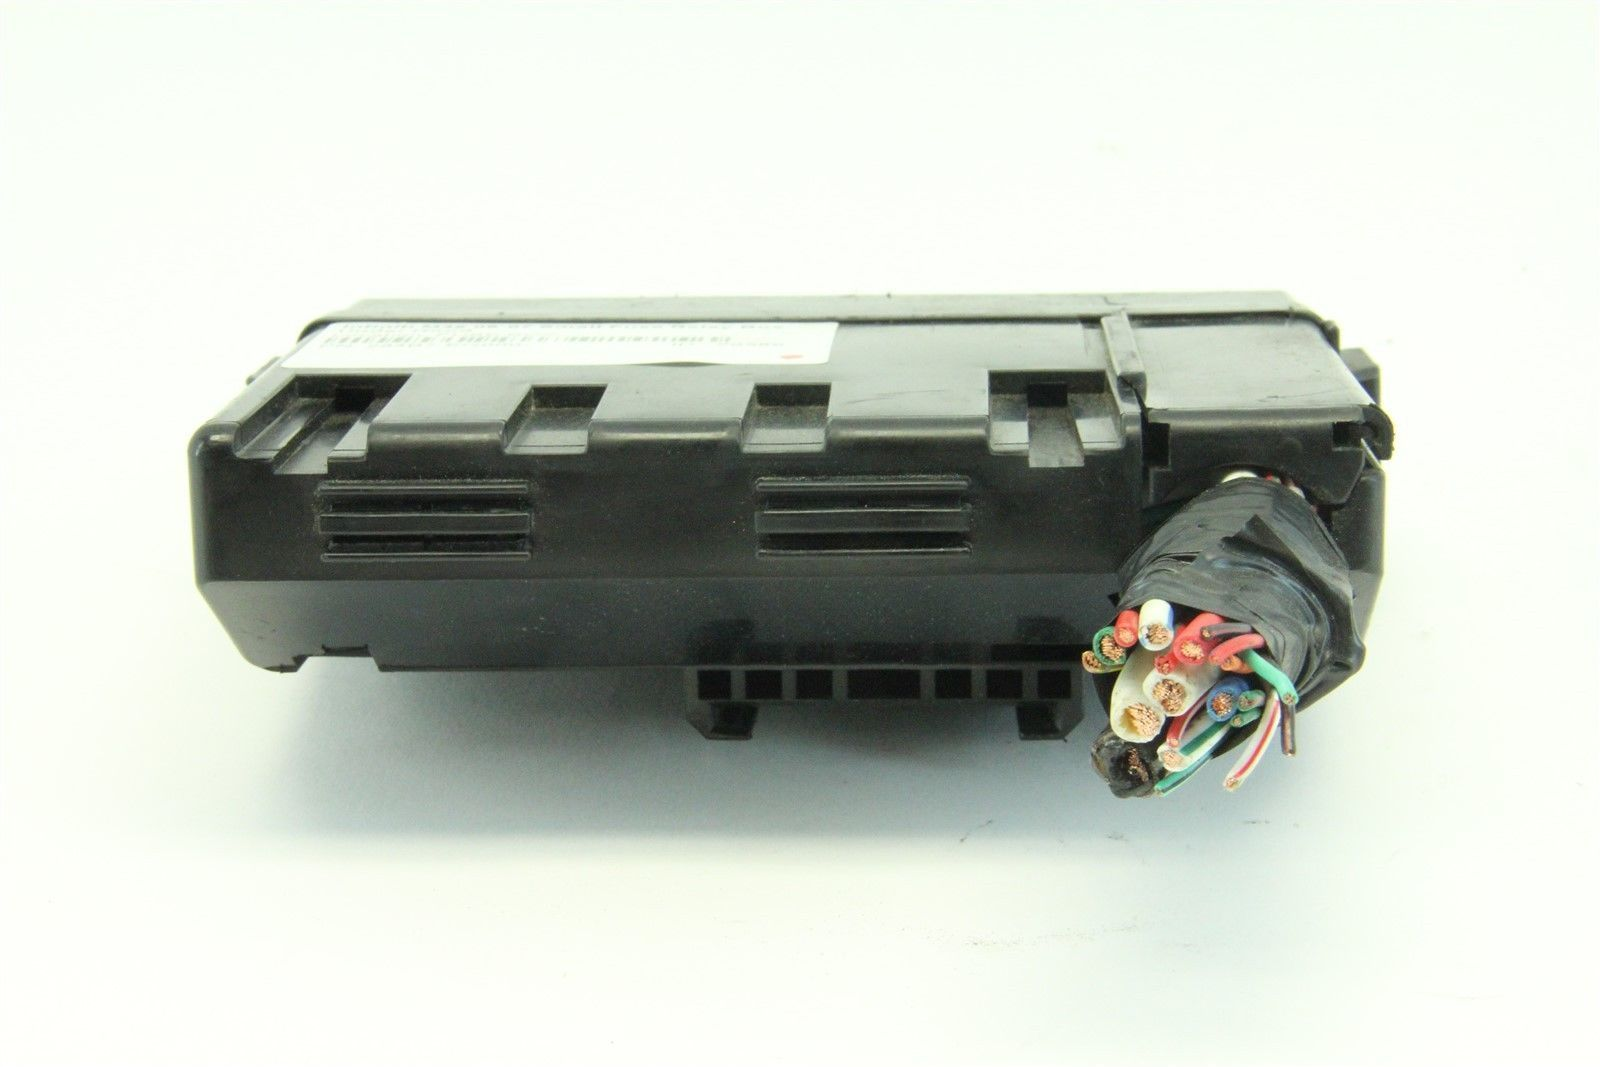 ... Infiniti M35 06-07 Small Fuse Relay Box Under Hood 284B7-EG000 ...